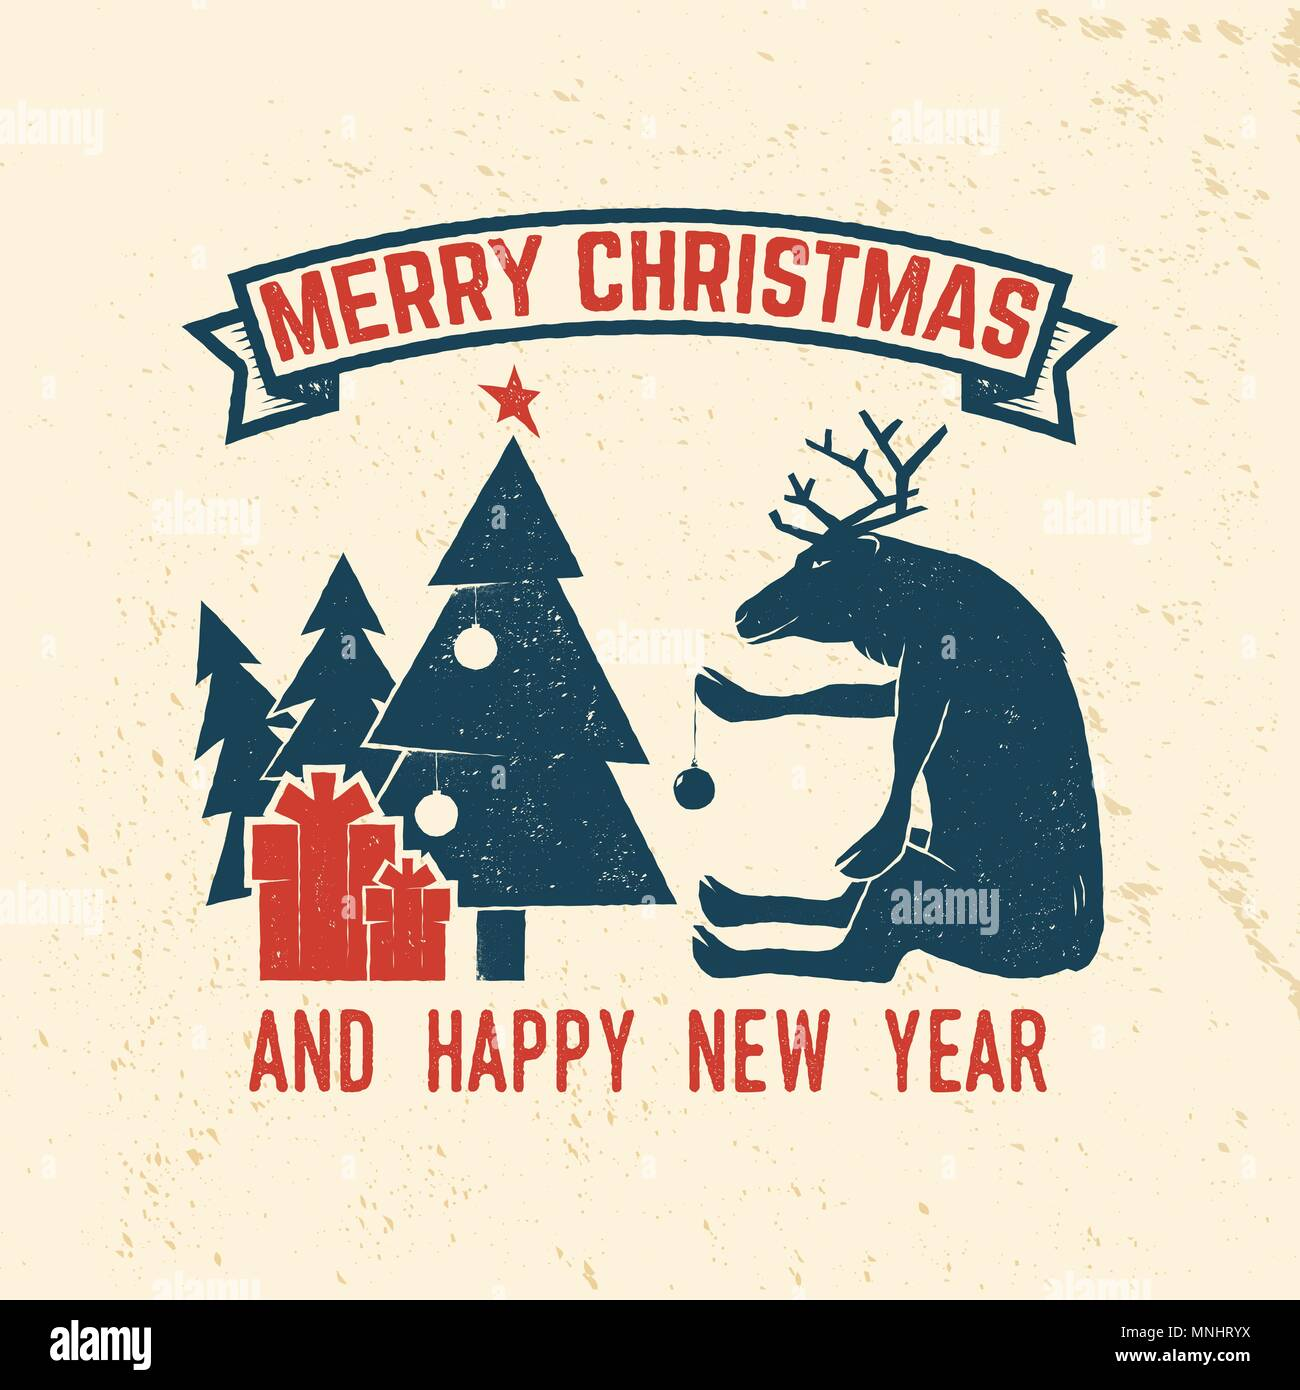 merry christmas and happy new year 2018 retro template with christmas tree gifts and reindeer vector illustration xmas design for congratulation ca